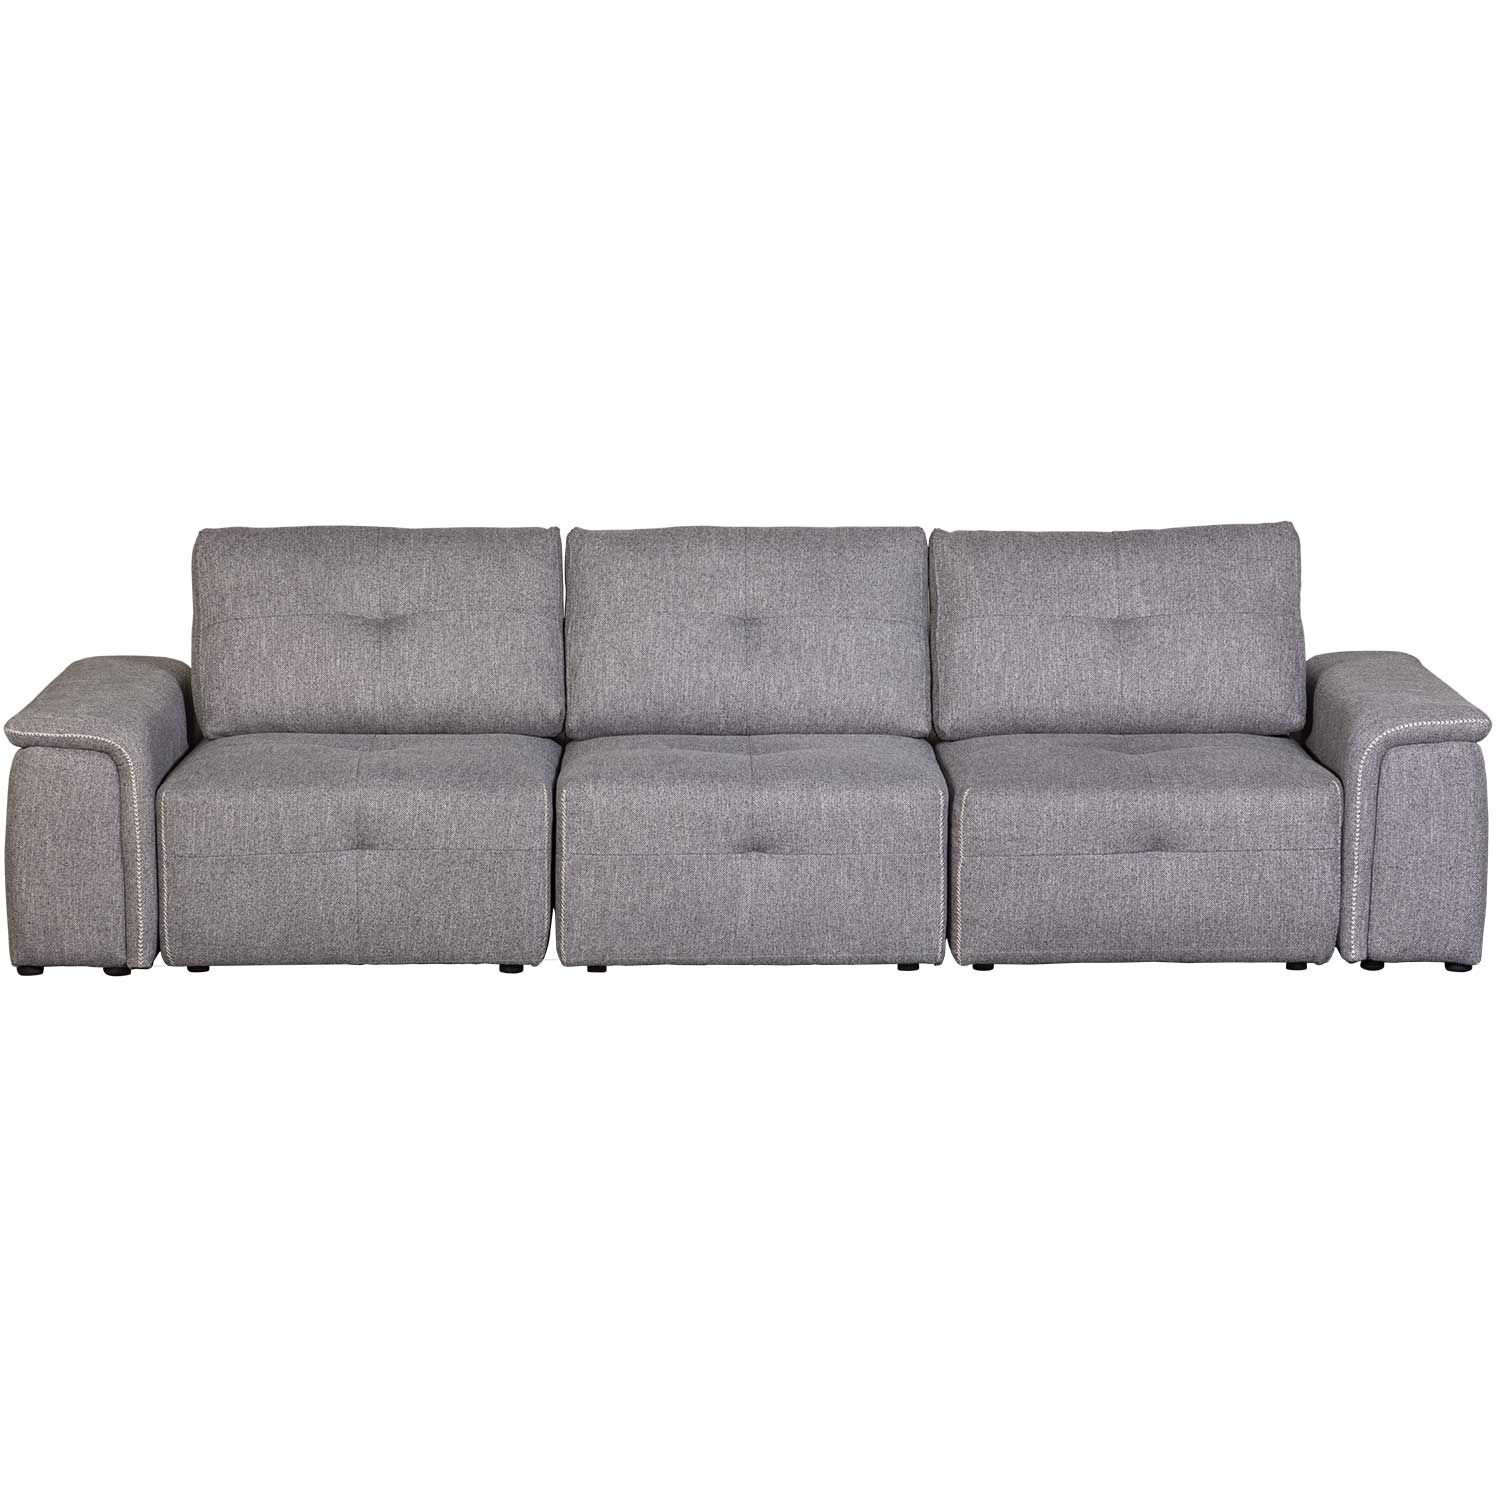 Picture of Adapt Gray Sofa